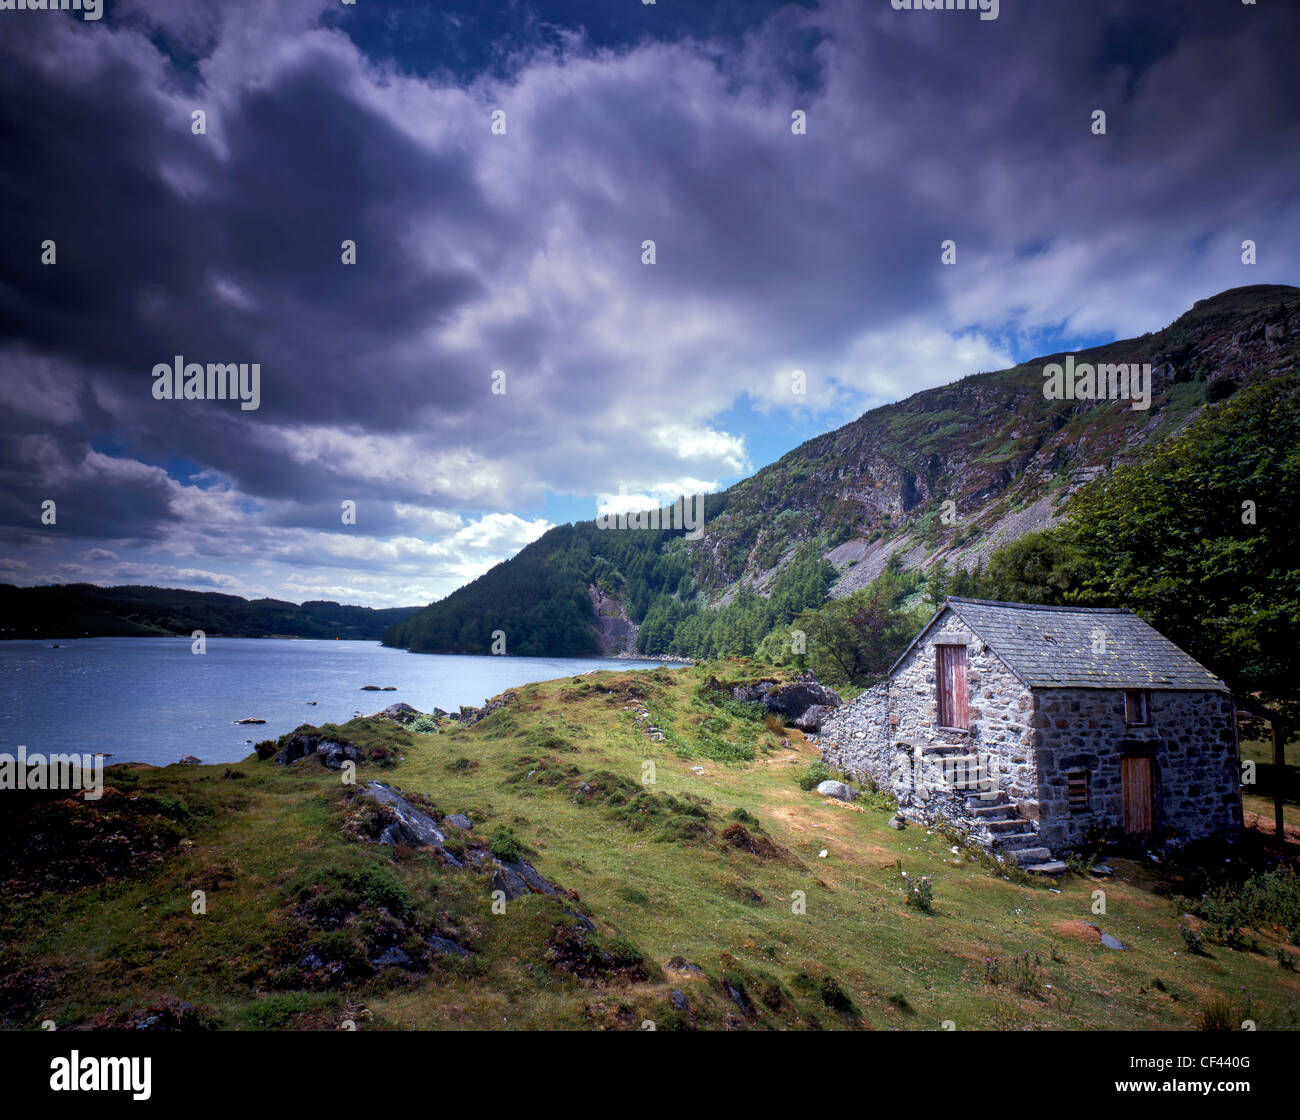 View across Llyn Geirionydd, a remote lake in Snowdonia as storm clouds gather overhead. - Stock Image